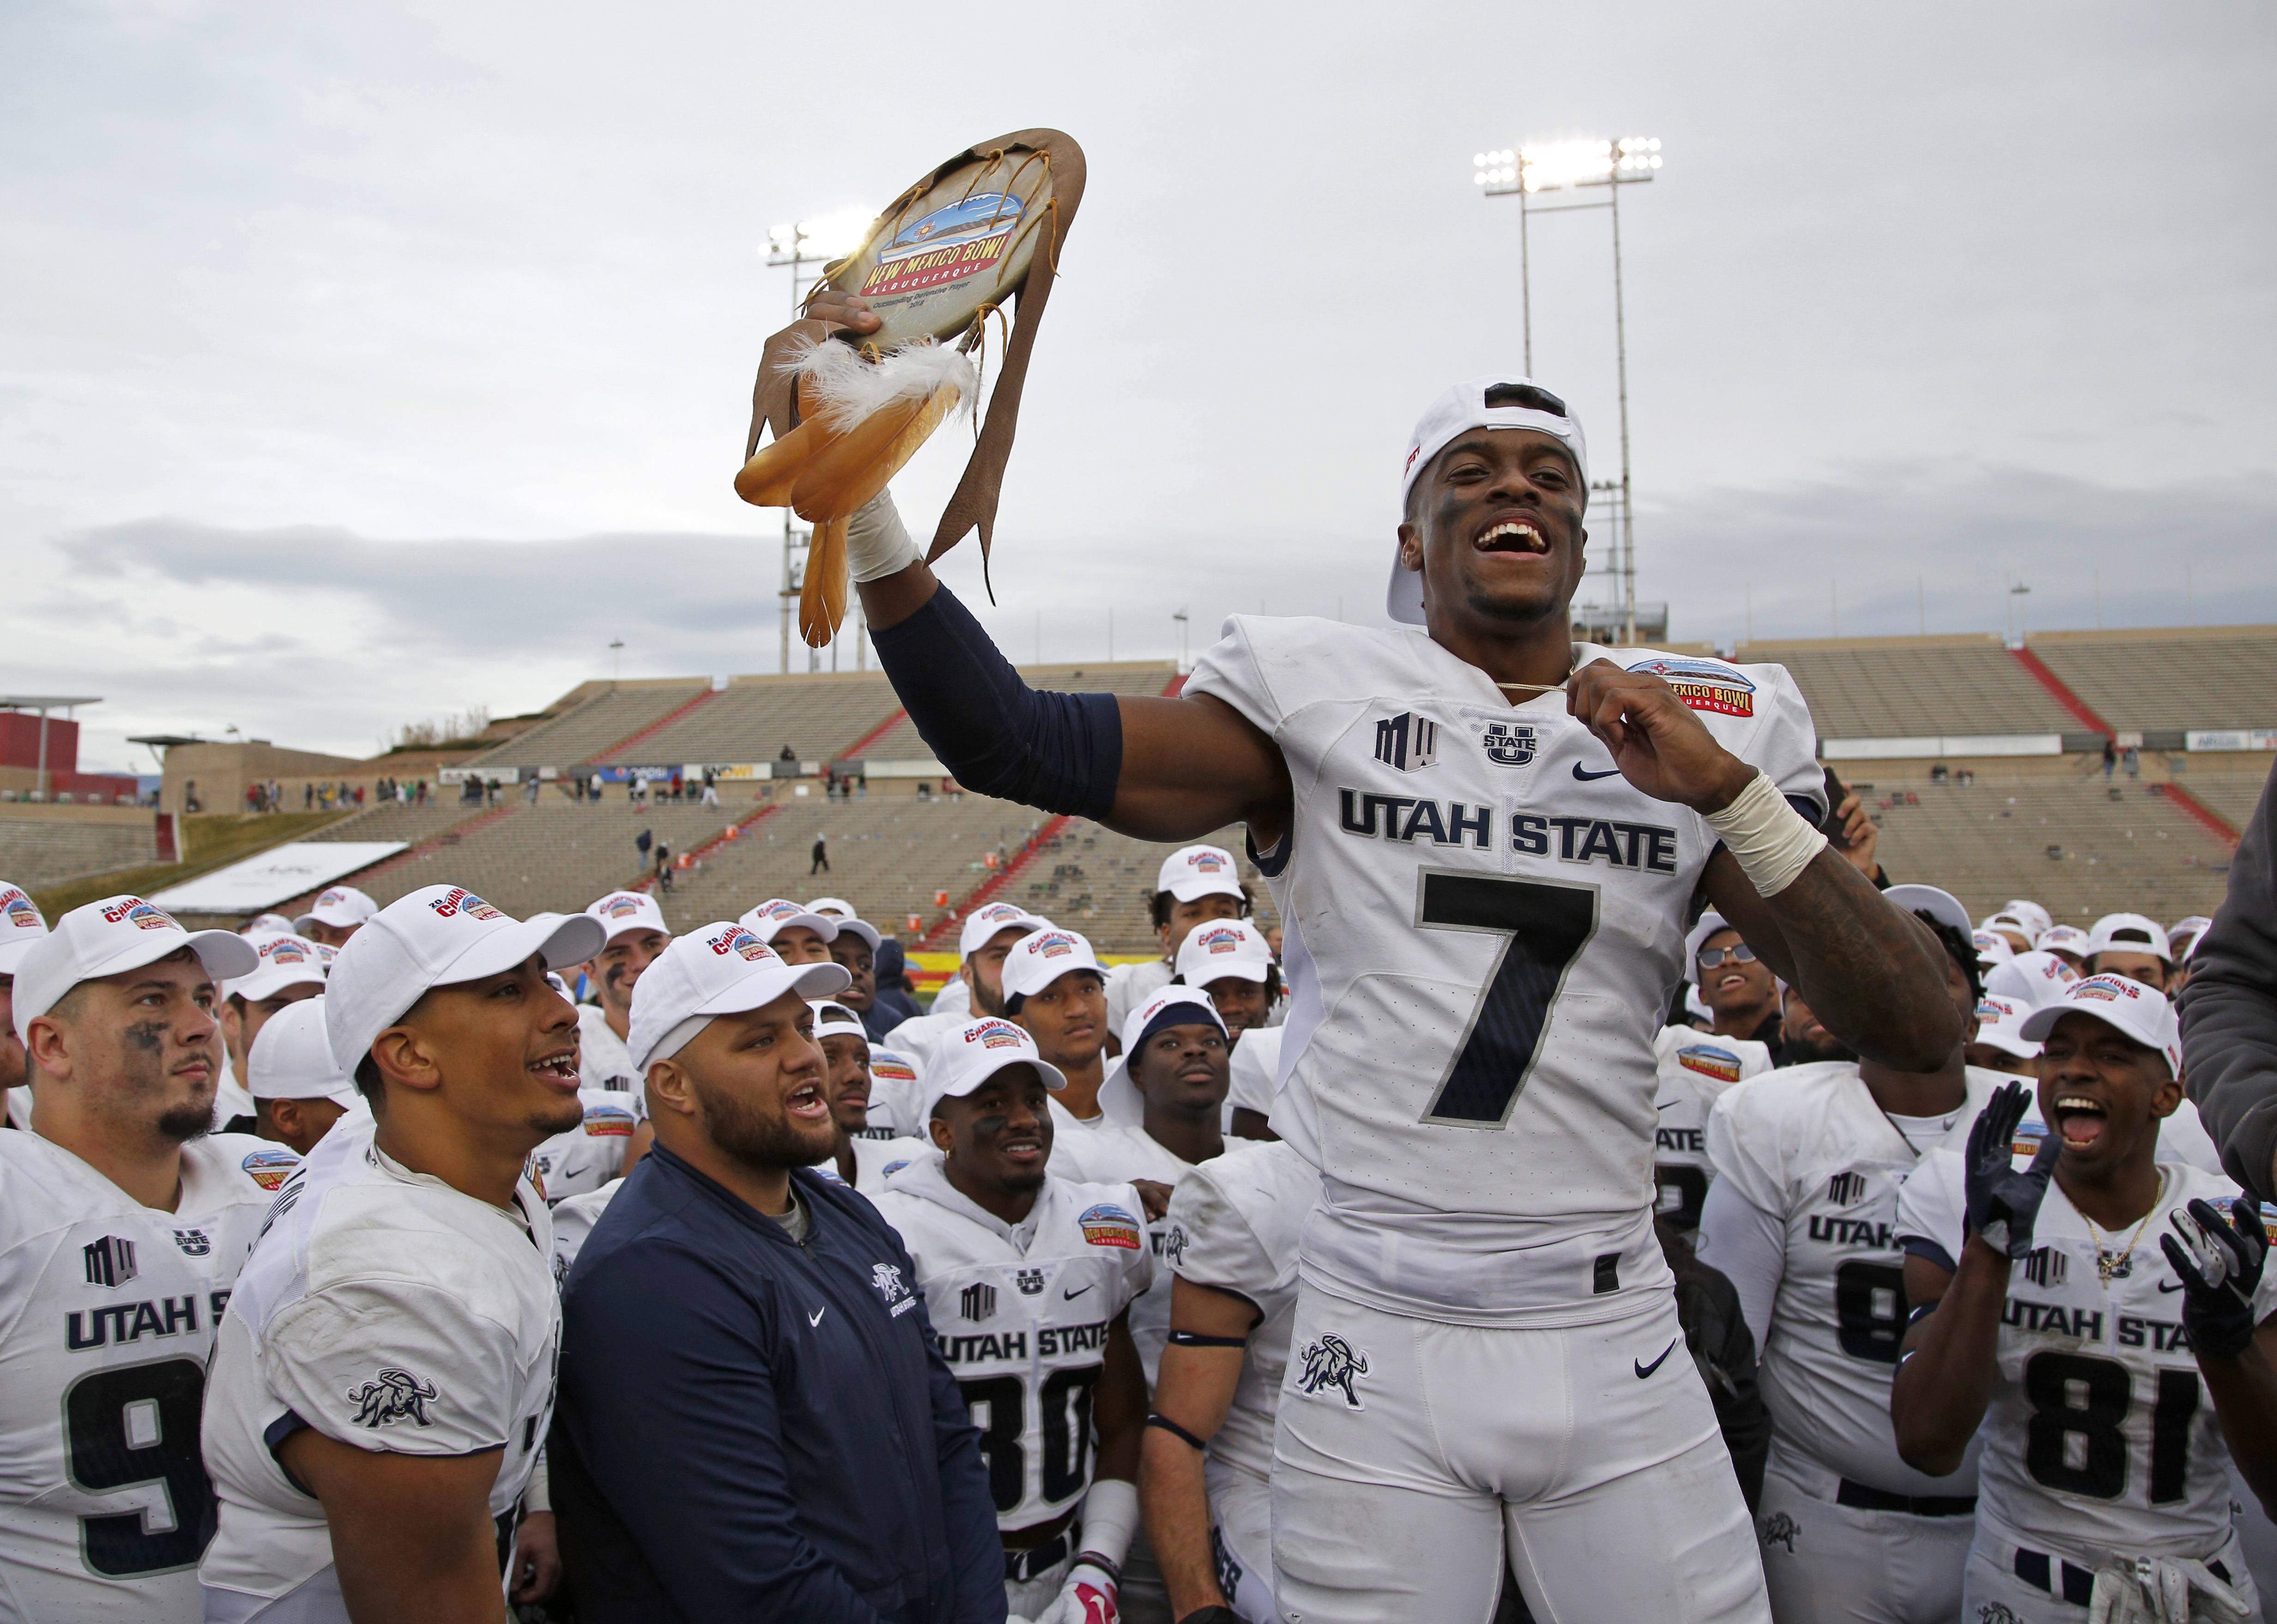 Utah State cornerback DJ Williams celebrates after being named the Outstanding Defensive Player of the New Mexico Bowl NCAA college football game in Albuquerque, N.M., Saturday, Dec. 15, 2018. Utah State beat North Texas 52-13. (AP Photo/Andres Leighton)